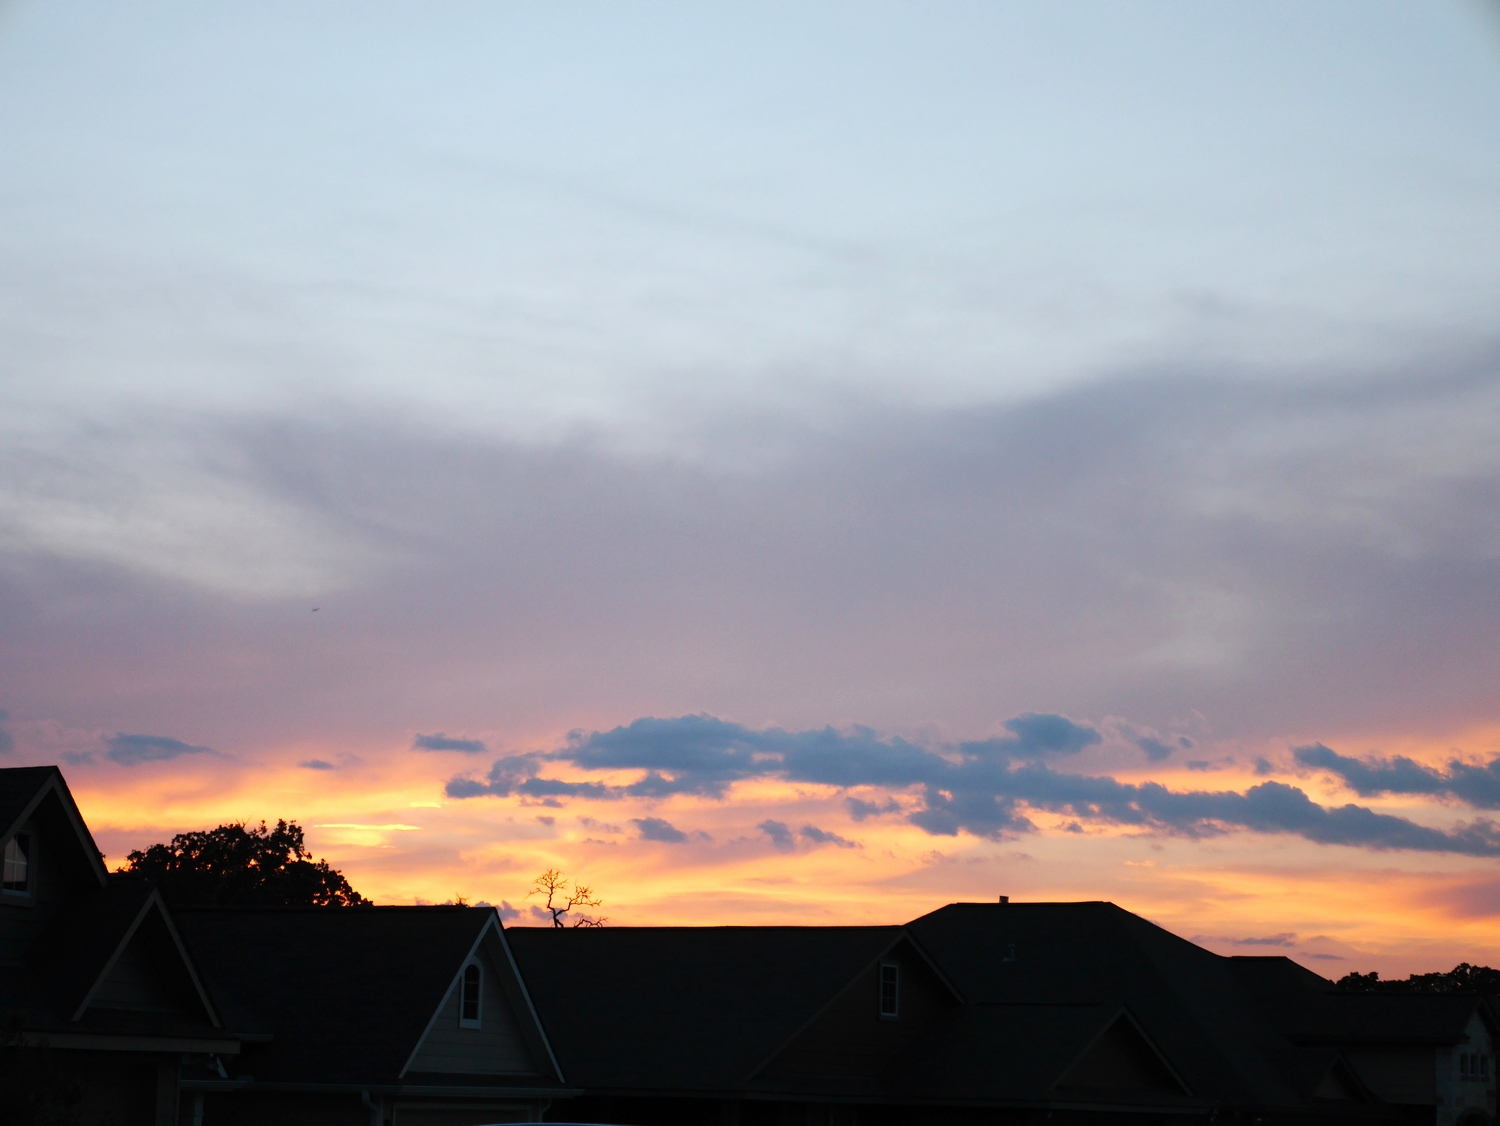 First Texas sunset at the new home